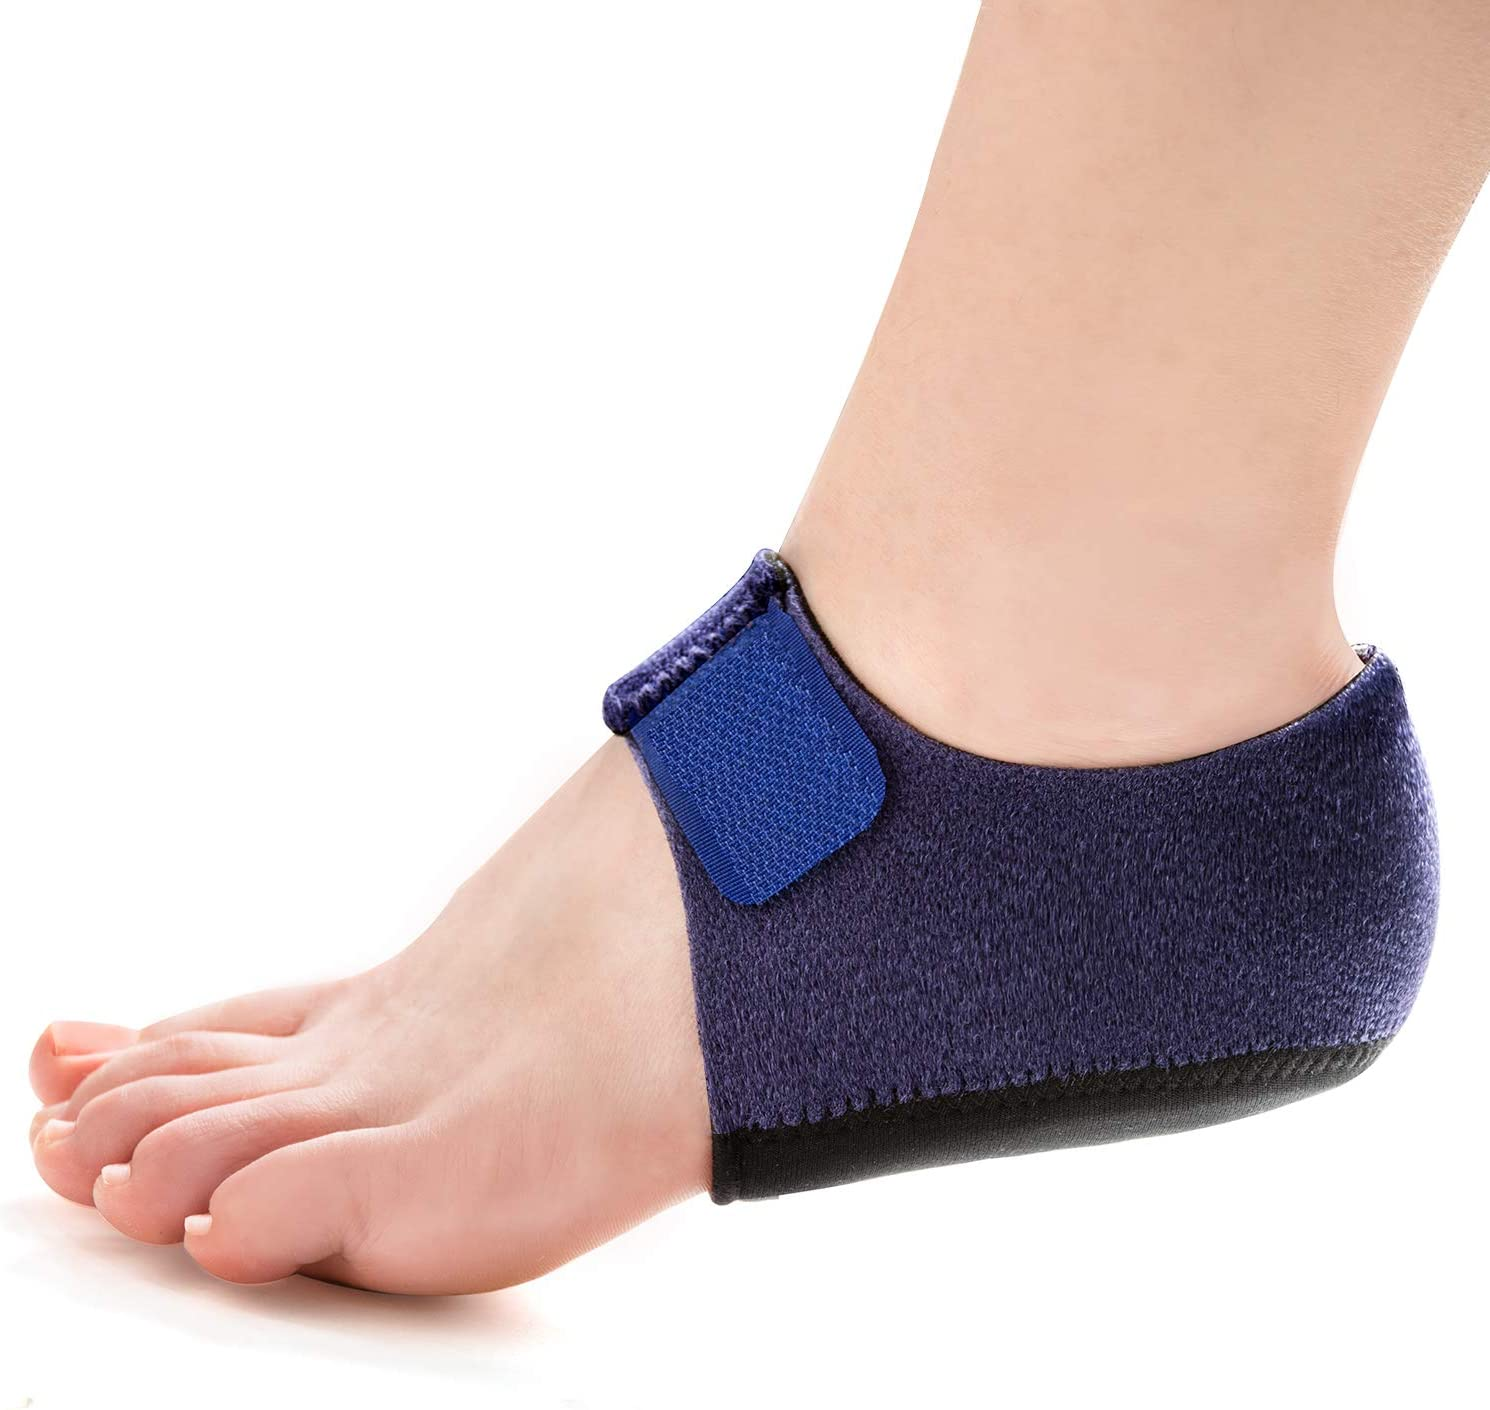 Amazon.com: Welnove 2PCS Heel Protectors, Heel Sleeves Pads, Heel Pads  Cushion, Heel Support for Relieving Heel Pain from Plantar Fasciitis - Heel  Spur -Tendinitis- Cracked Heels: Health & Personal Care